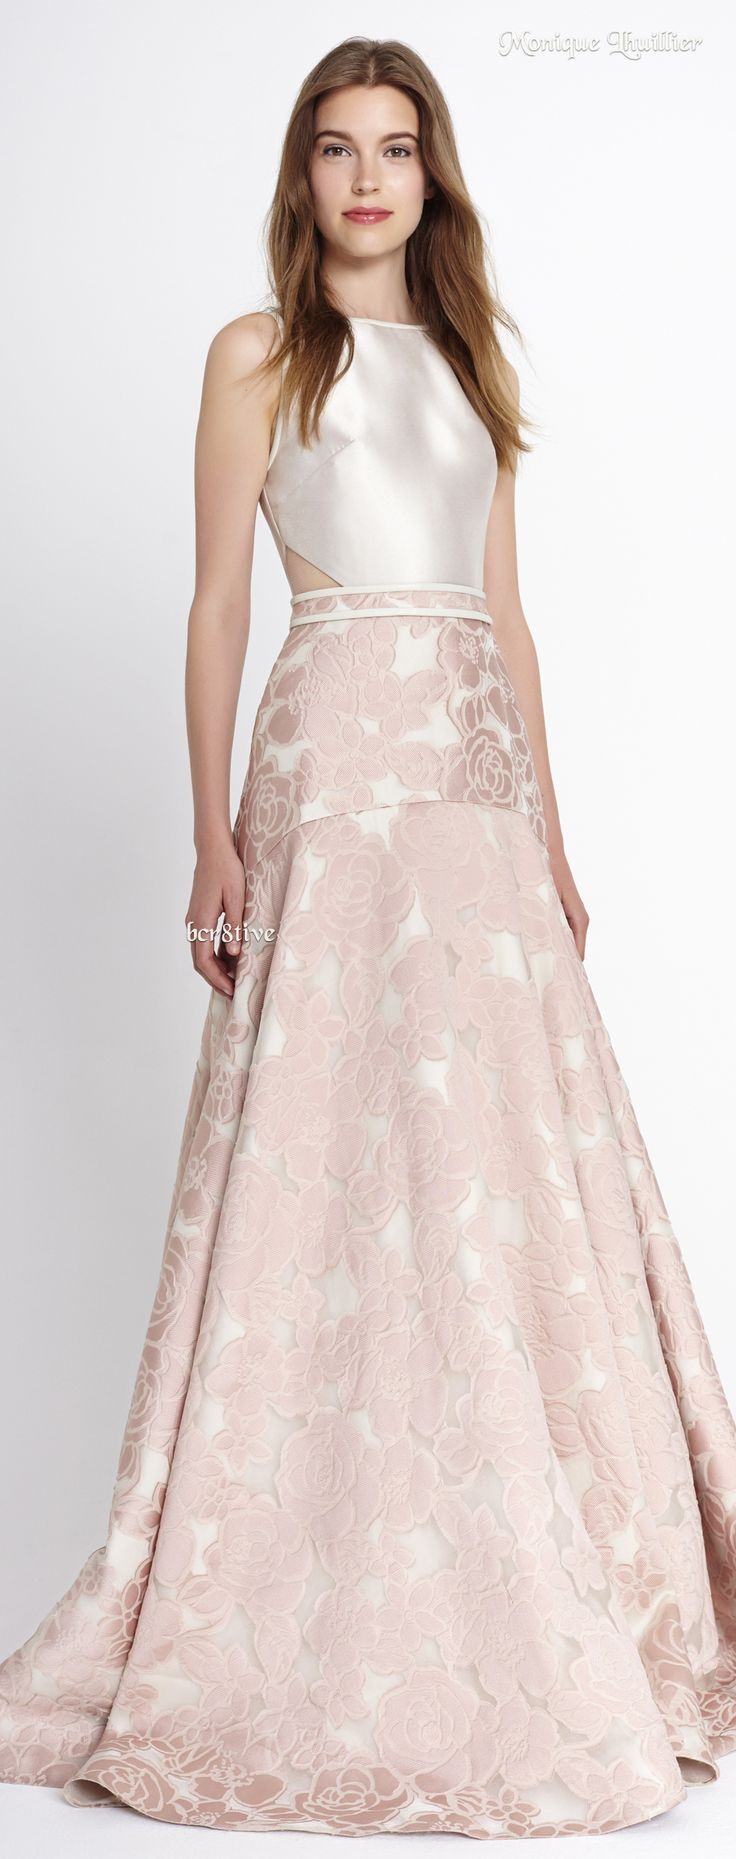 Monique Lhuillier 2015                                                                                                                                                     More